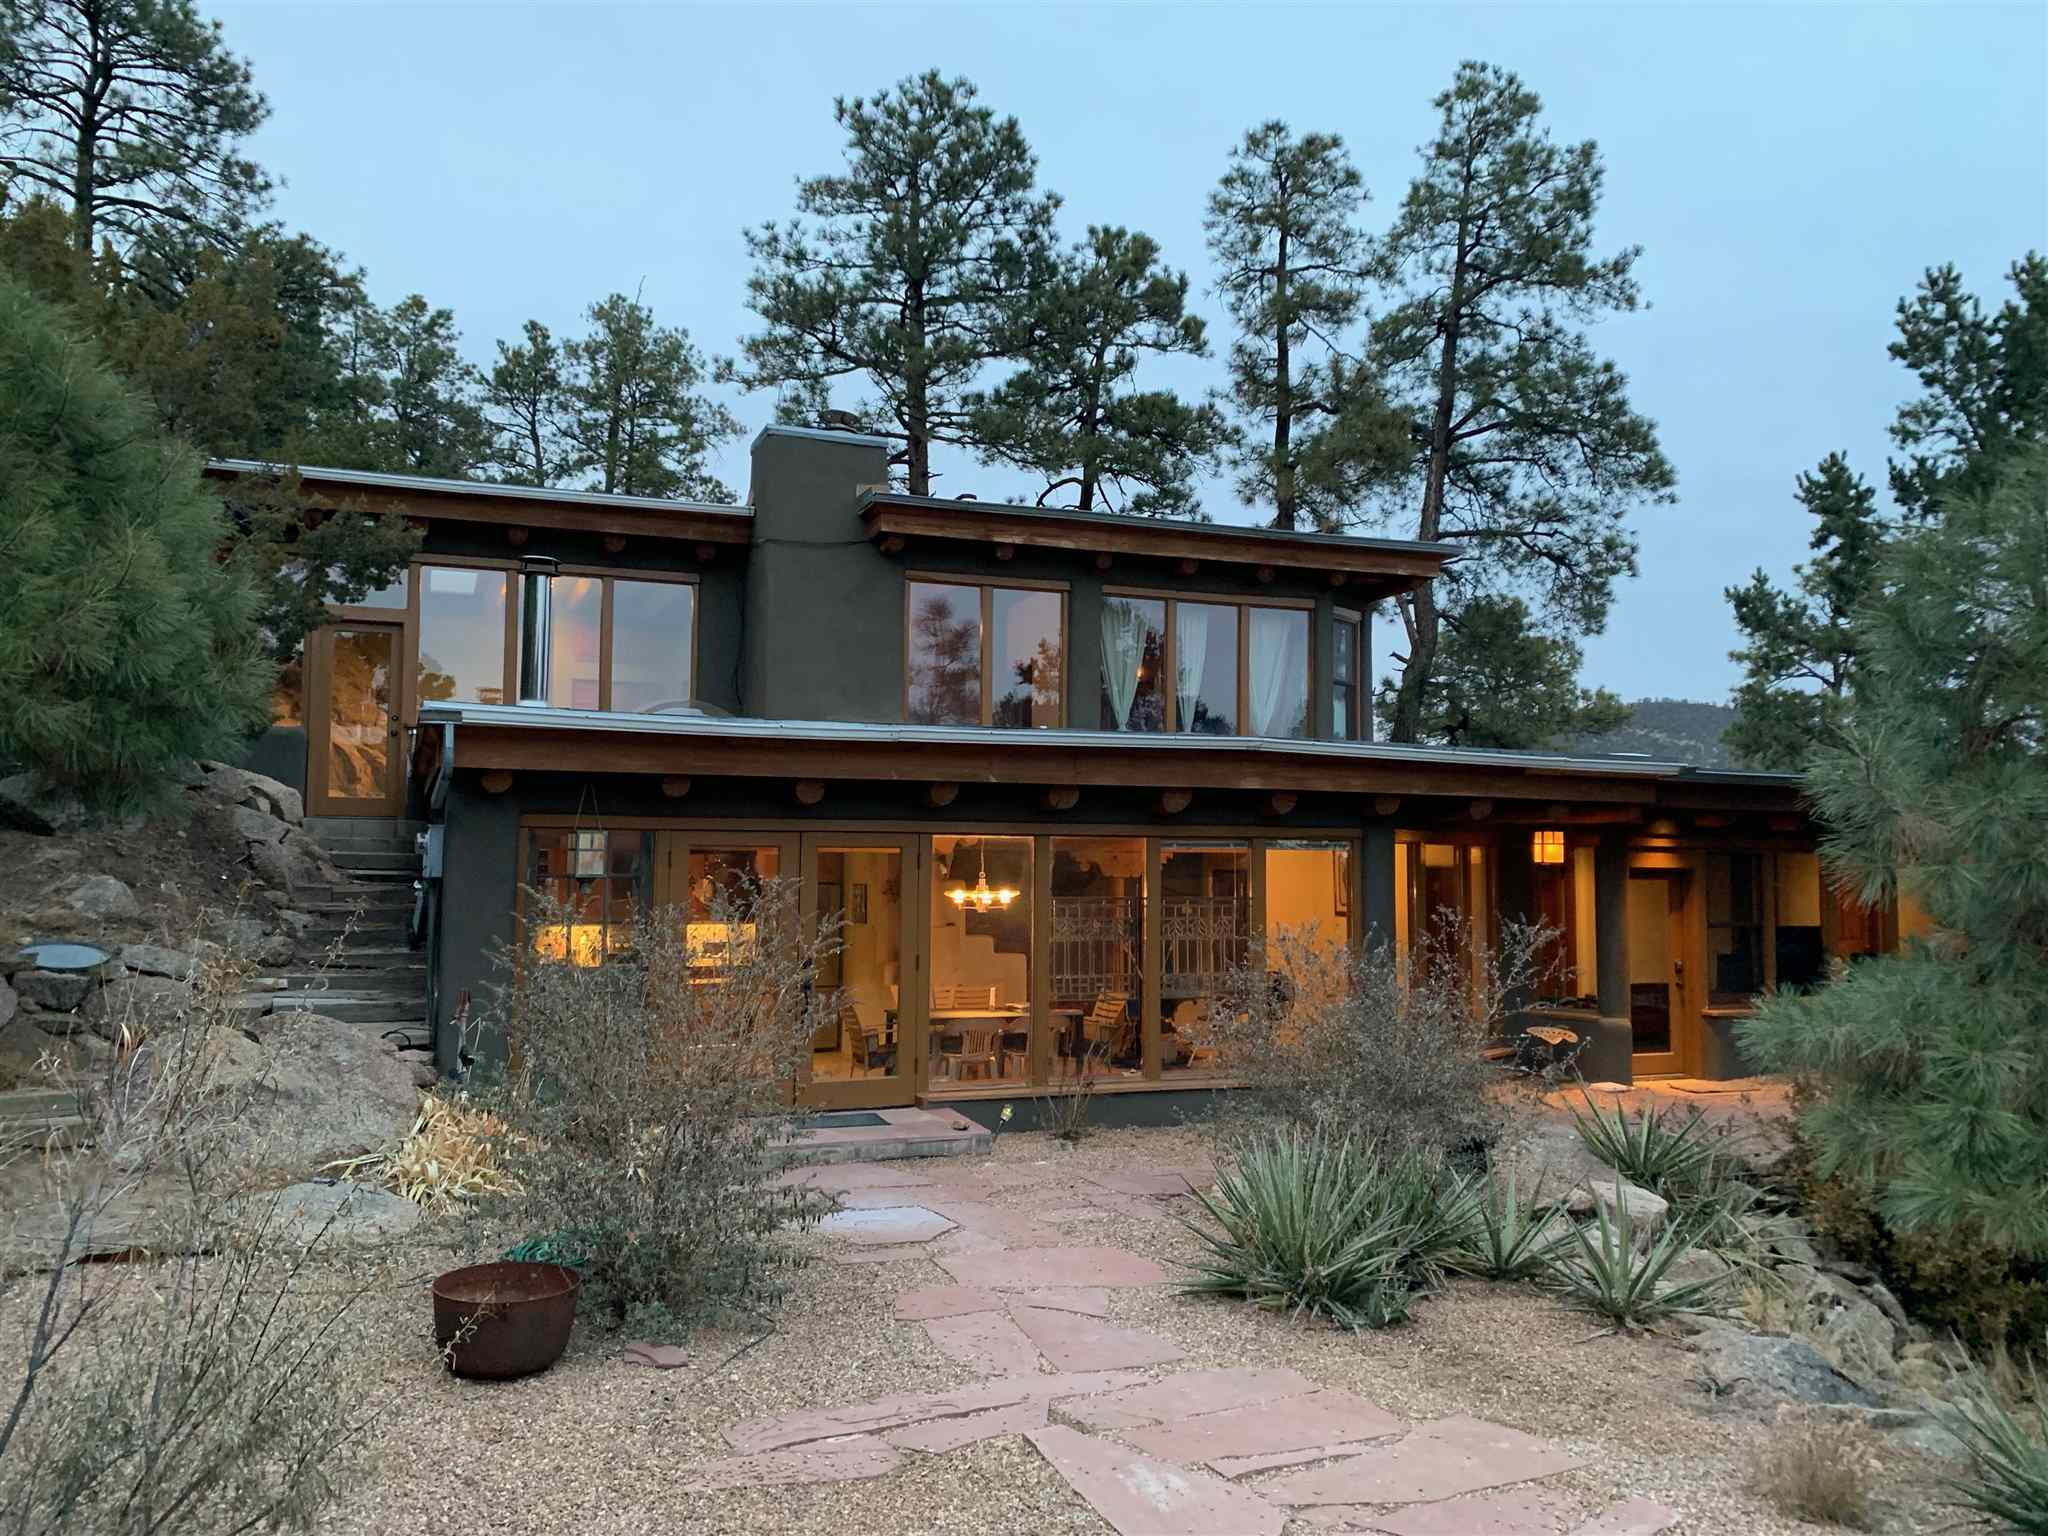 """A true mountain oasis minutes from town. This 4 bedroom / 2 bath main house and 1 bedroom / 1 bath guest house sits high above the valley on a Ponderosa Pine filled 2.74 acre lot overlooking national forest. The main house has a large kitchen / living area downstairs with custom concrete counters inlayed with turquoise and stainless steel appliances. In addition to electric baseboard heat, the main floor also has a large wood burning kiva fireplace and a wood burning stove to provide additional heat. There are two bedrooms on the first floor with a shared full bath. Upstairs has a third guest room built around the existing granite along with a full master bath and master bedroom.  A huge deck extends from the master bedroom around the north side of the house with views of the surrounding pine covered hills.  The guest house, almost completely out of sight from the main house, has a full kitchen and sitting area downstairs with a large bedroom and bath upstairs. Both levels have exterior doors with a small patio off the bedroom. The home has four """"off street"""" parking spaces at the main house and two """"off street"""" spaces across the road from the guest house. There is also an a LARGE storage shed included on the property in front of those two parking spaces."""